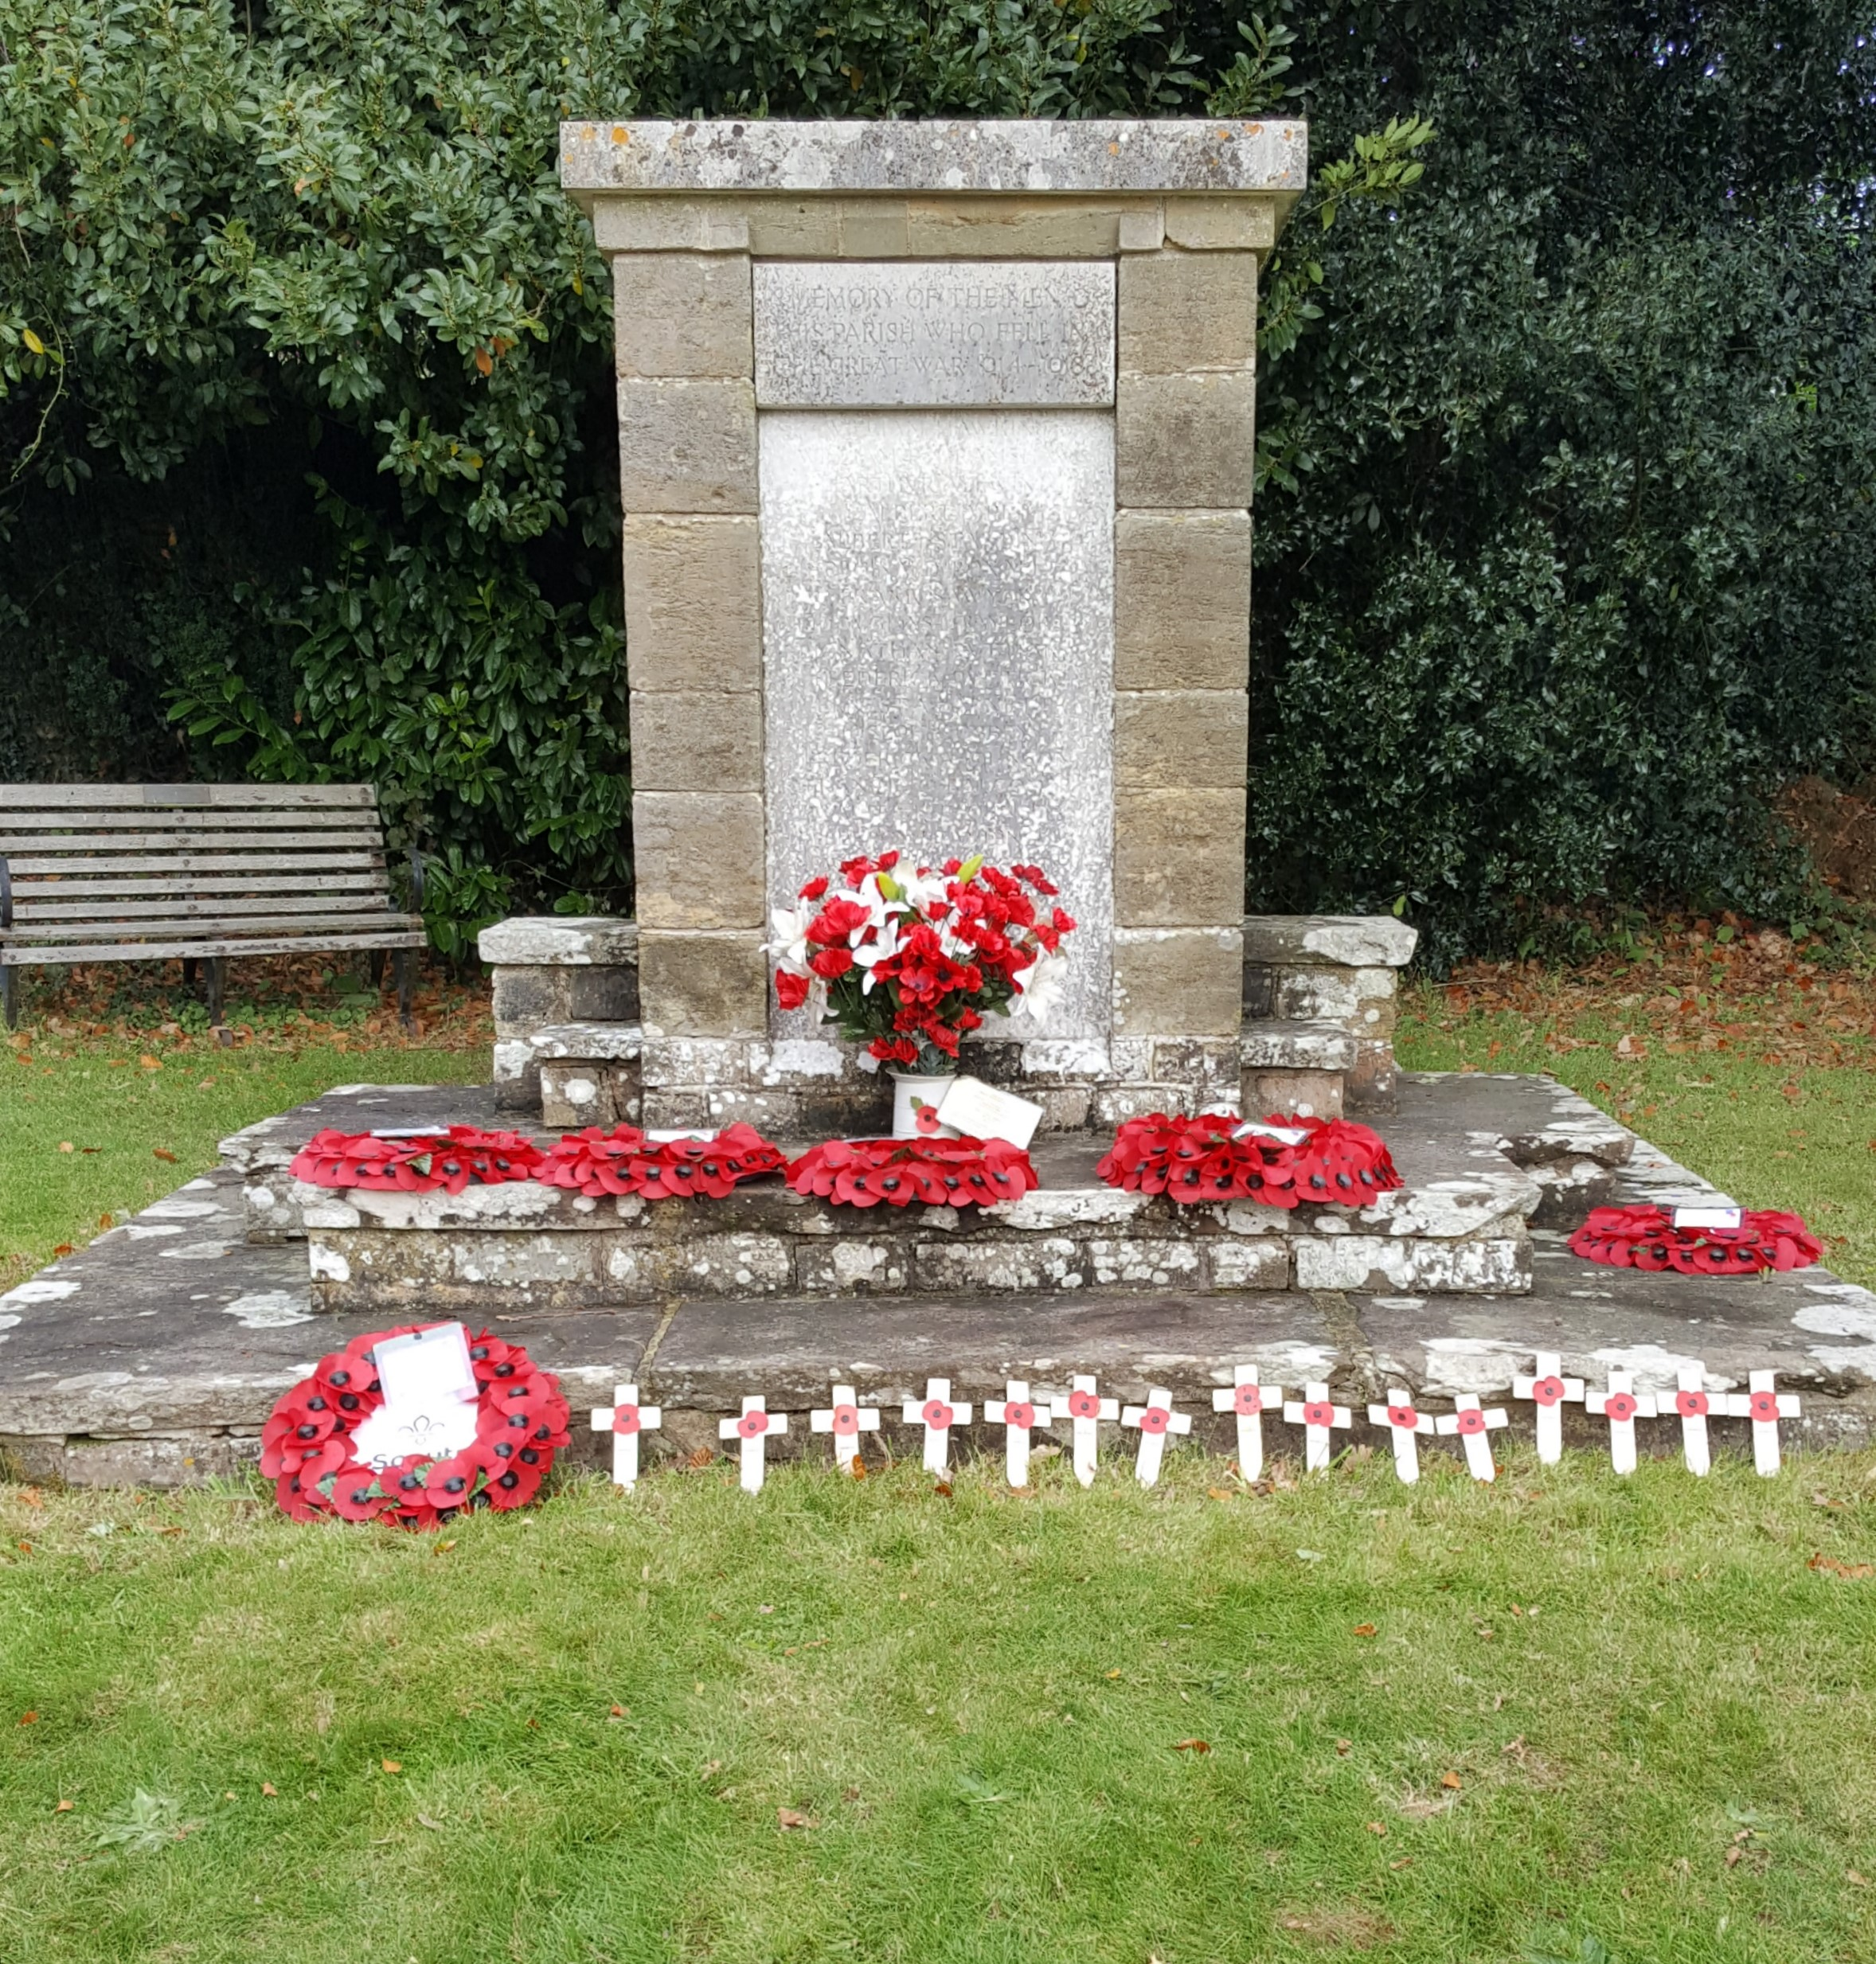 Fittleworth remembers those who have died and those who were affected in any way by war. A service was held at St Mary's Church Fittleworth to mark this and the Centenary of the Armistice Day 11.11.1918